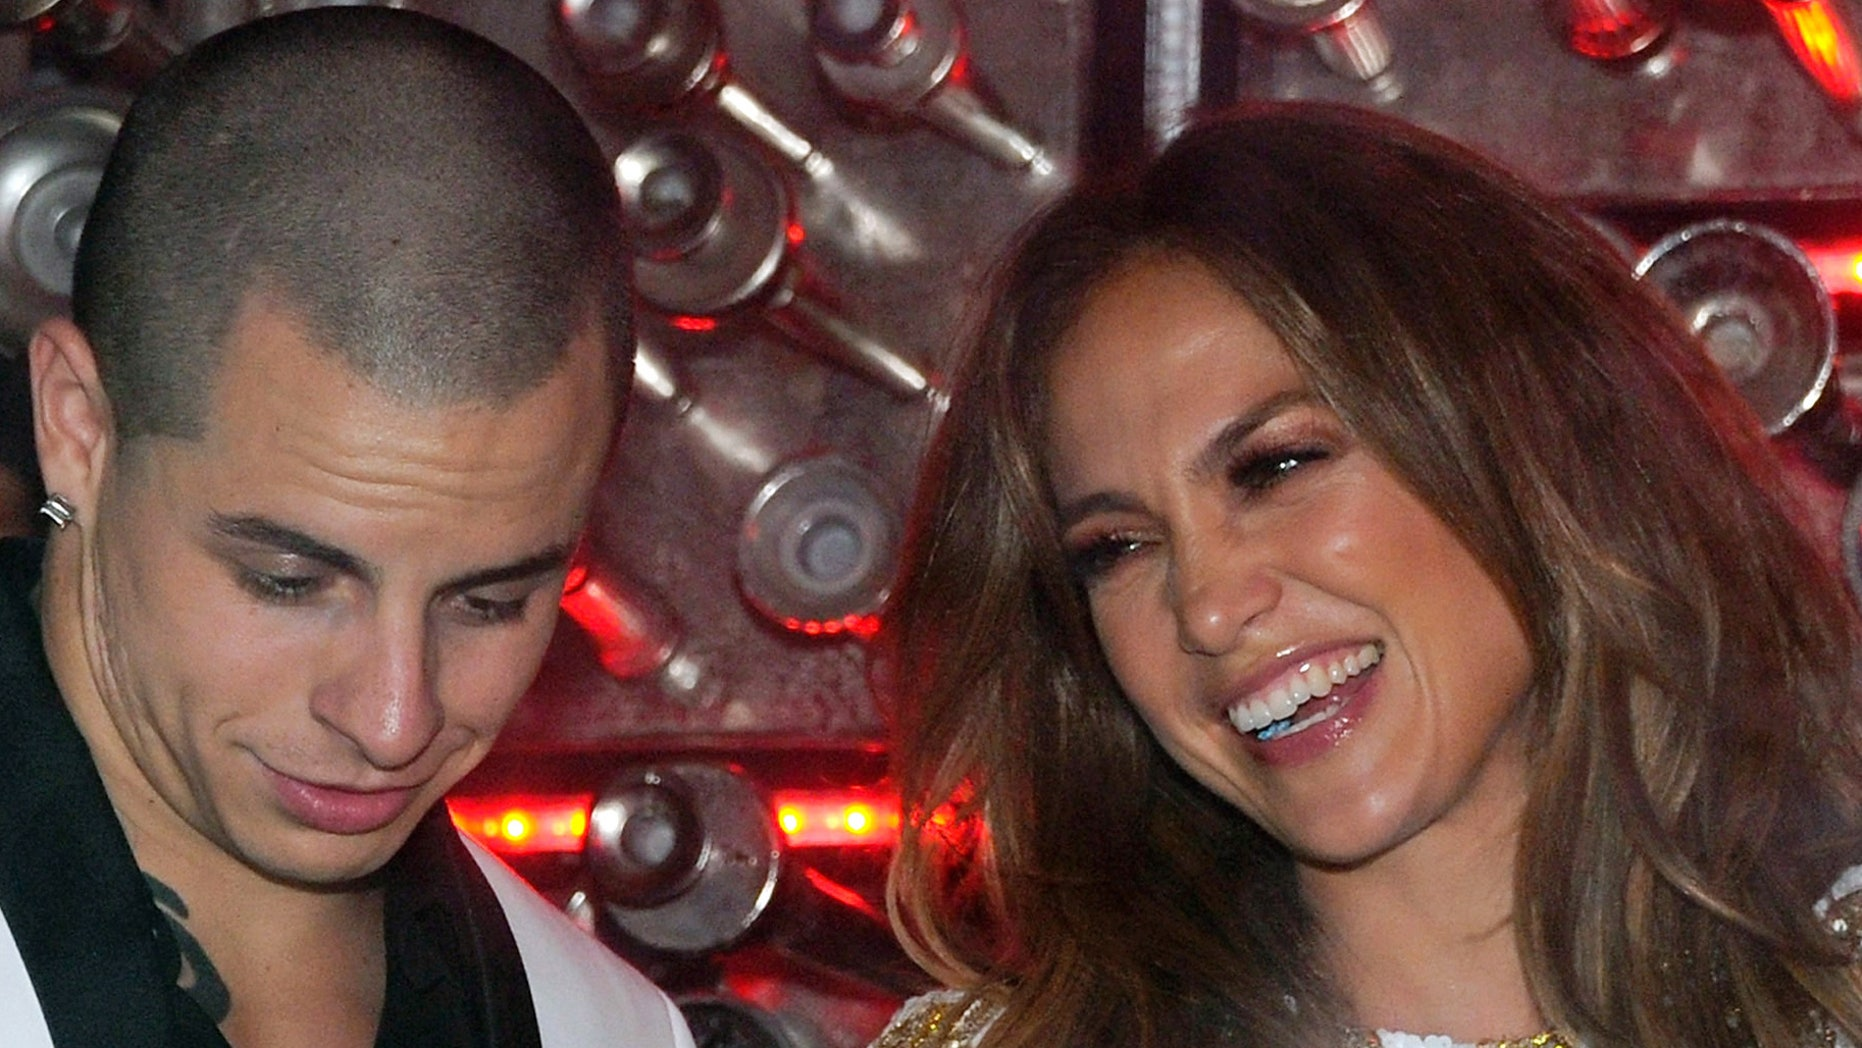 """LAS VEGAS, NV - MAY 27:  Dancer Casper Smart (L) and singer/actress Jennifer Lopez share a laugh as they celebrate the launch of Lopez's new single, """"Goin' In"""" at Hyde Bellagio at the Bellagio May 27, 2012 in Las Vegas, Nevada.  (Photo by Ethan Miller/Getty Images for Hyde Bellagio)"""